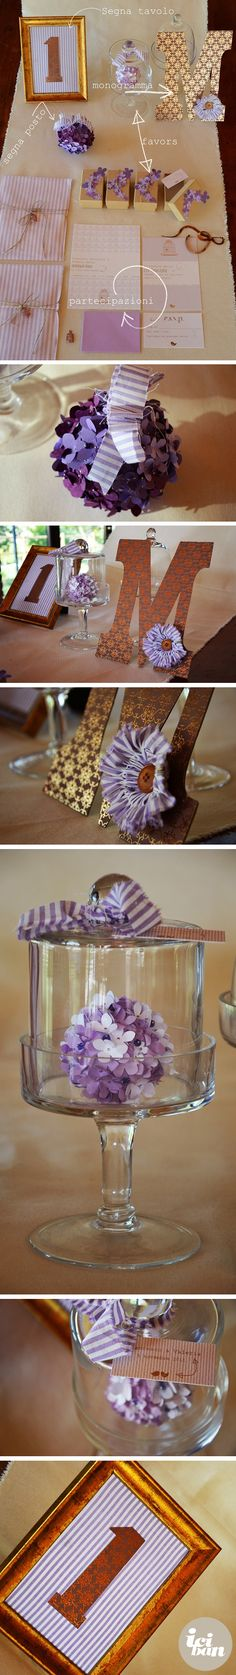 Wedding suite lavanda + bronzo by iciban